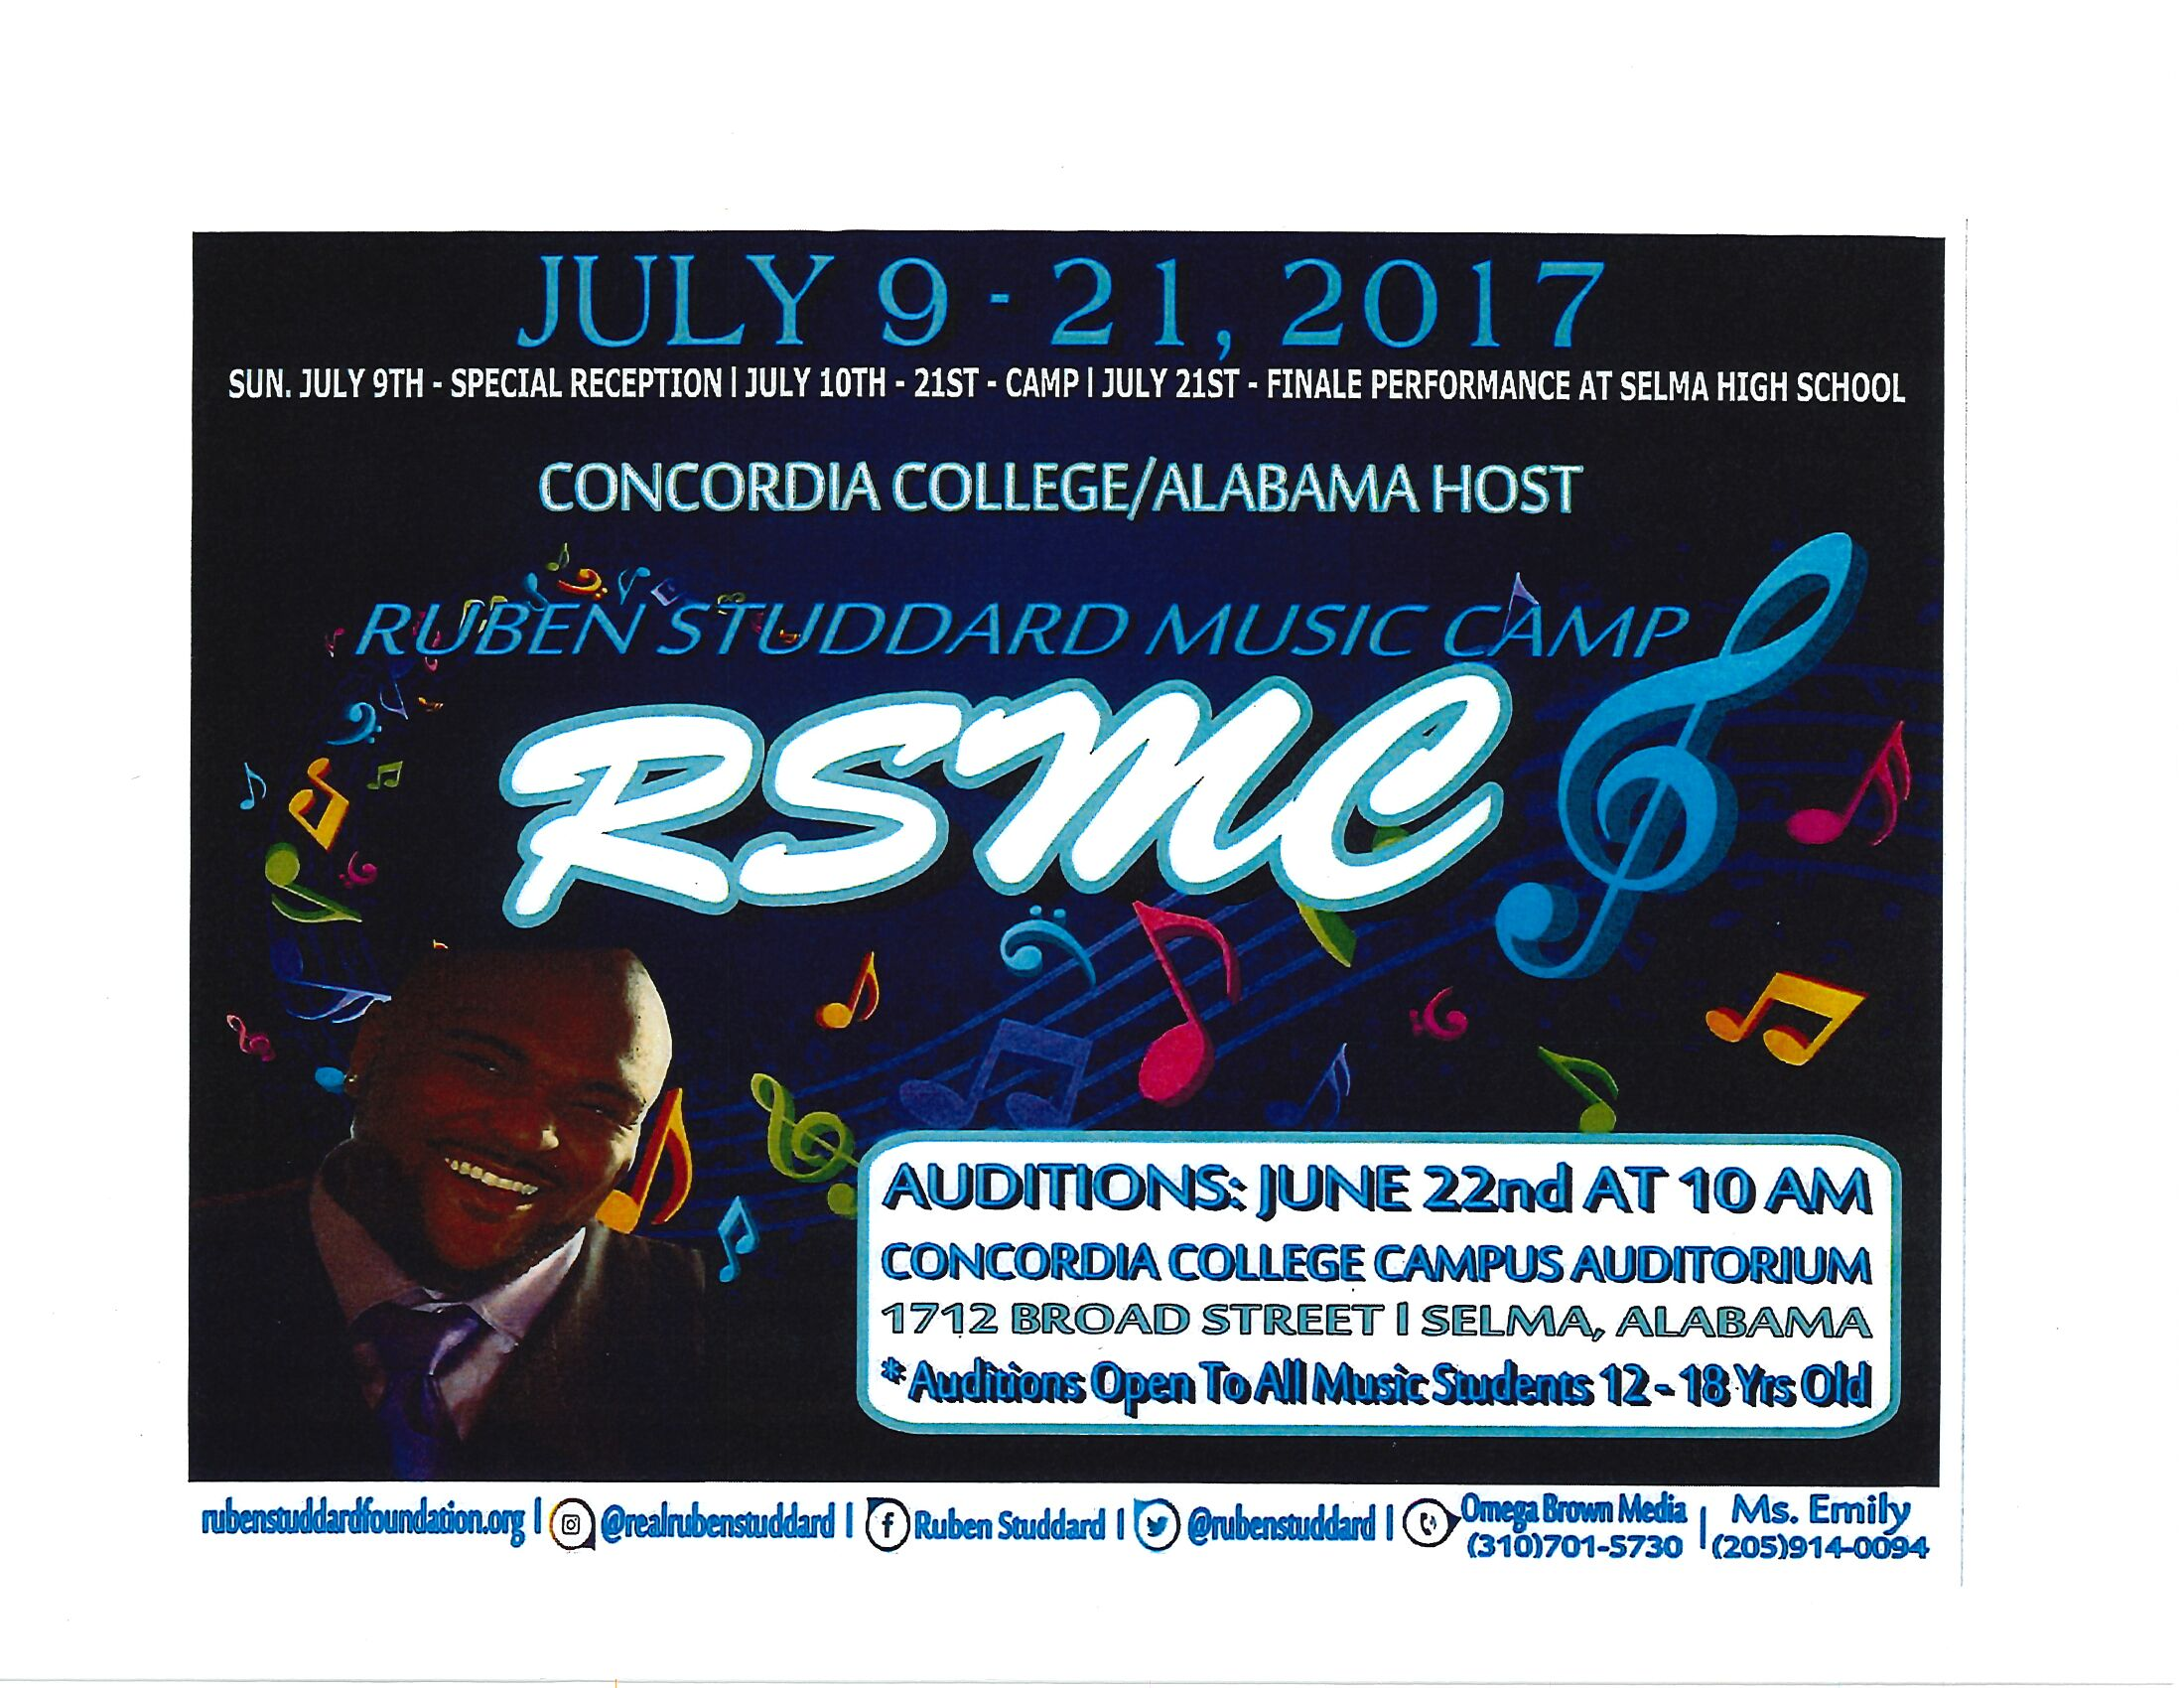 Ruben Studdard Music Camp